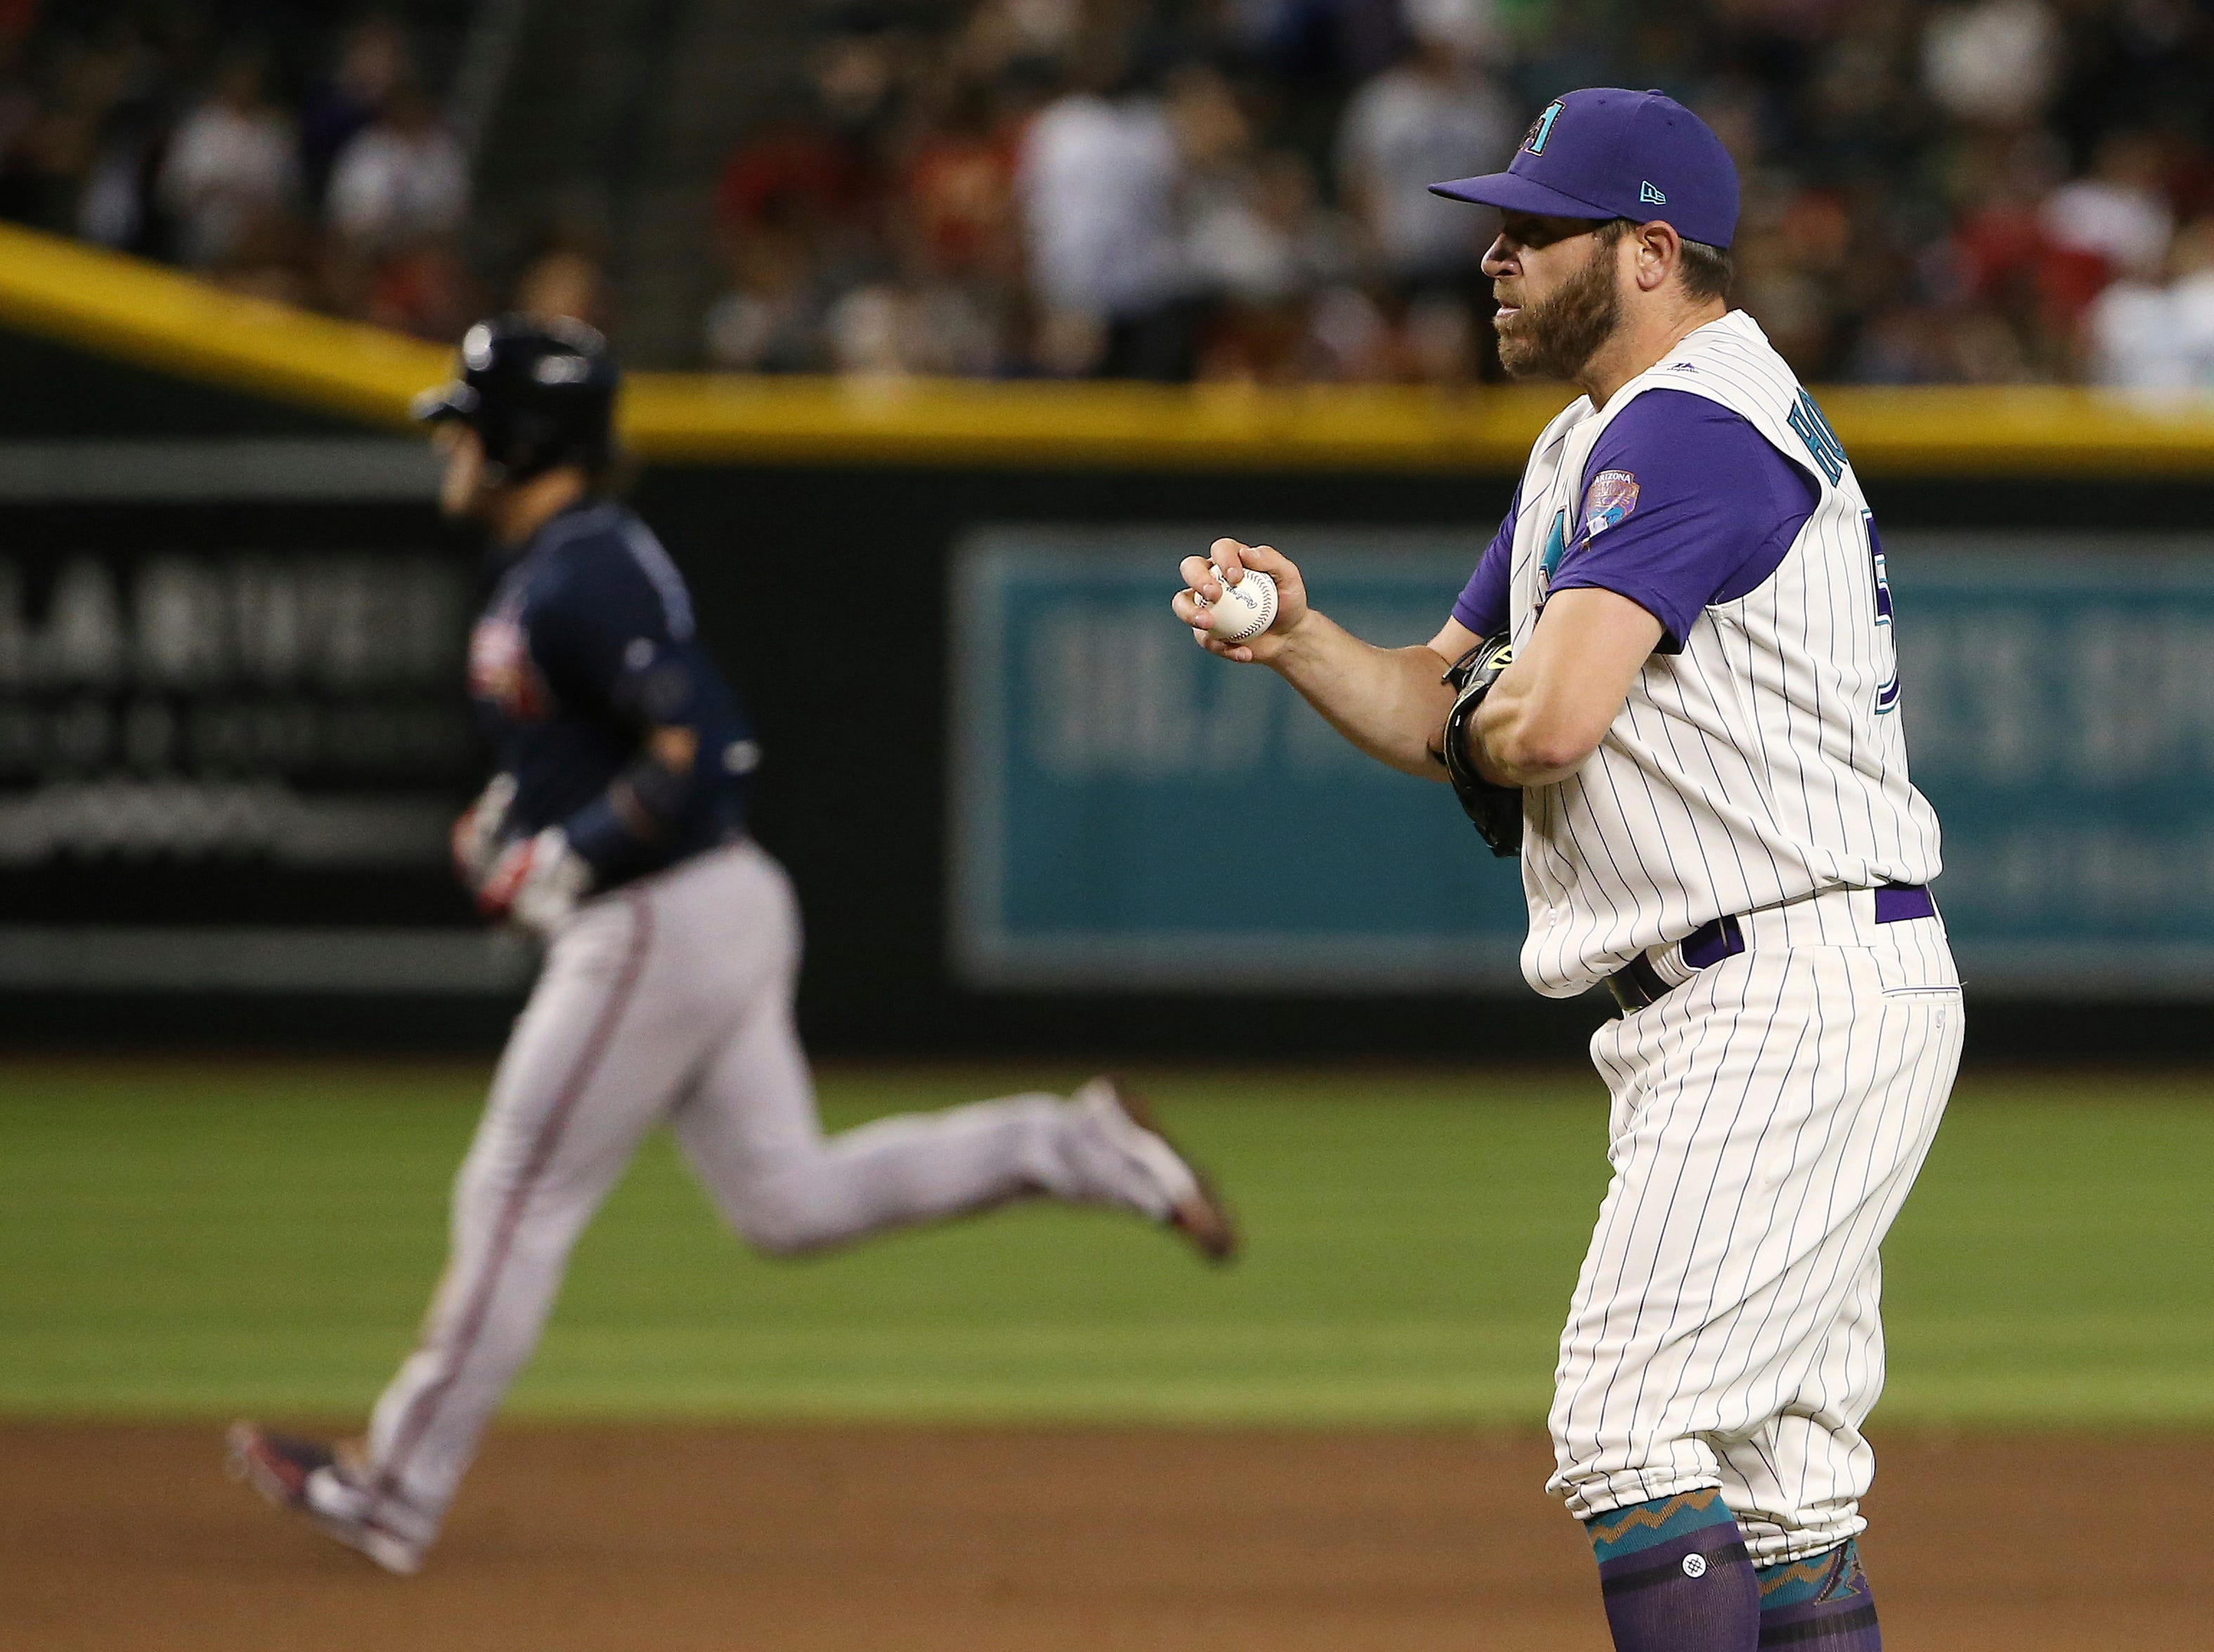 Arizona Diamondbacks relief pitcher Greg Holland, right, gets a new baseball after giving up a home run to Atlanta Braves' Josh Donaldson, left, during the ninth inning of a baseball game Thursday, May 9, 2019, in Phoenix. (AP Photo/Ross D. Franklin)